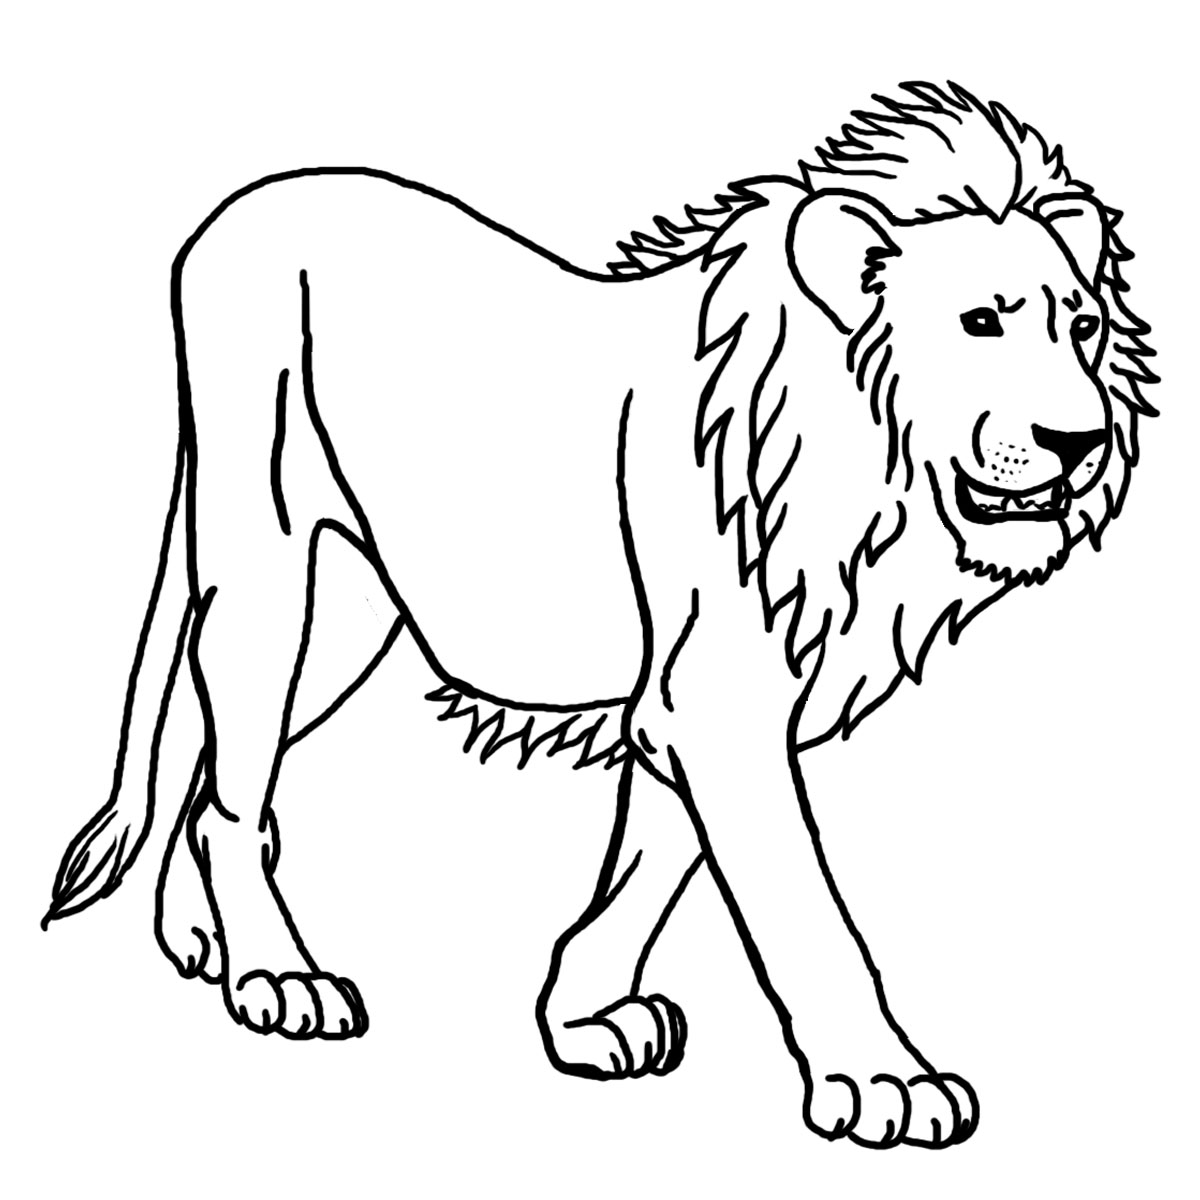 colouring images of lion lion coloring pages to download and print for free images lion colouring of